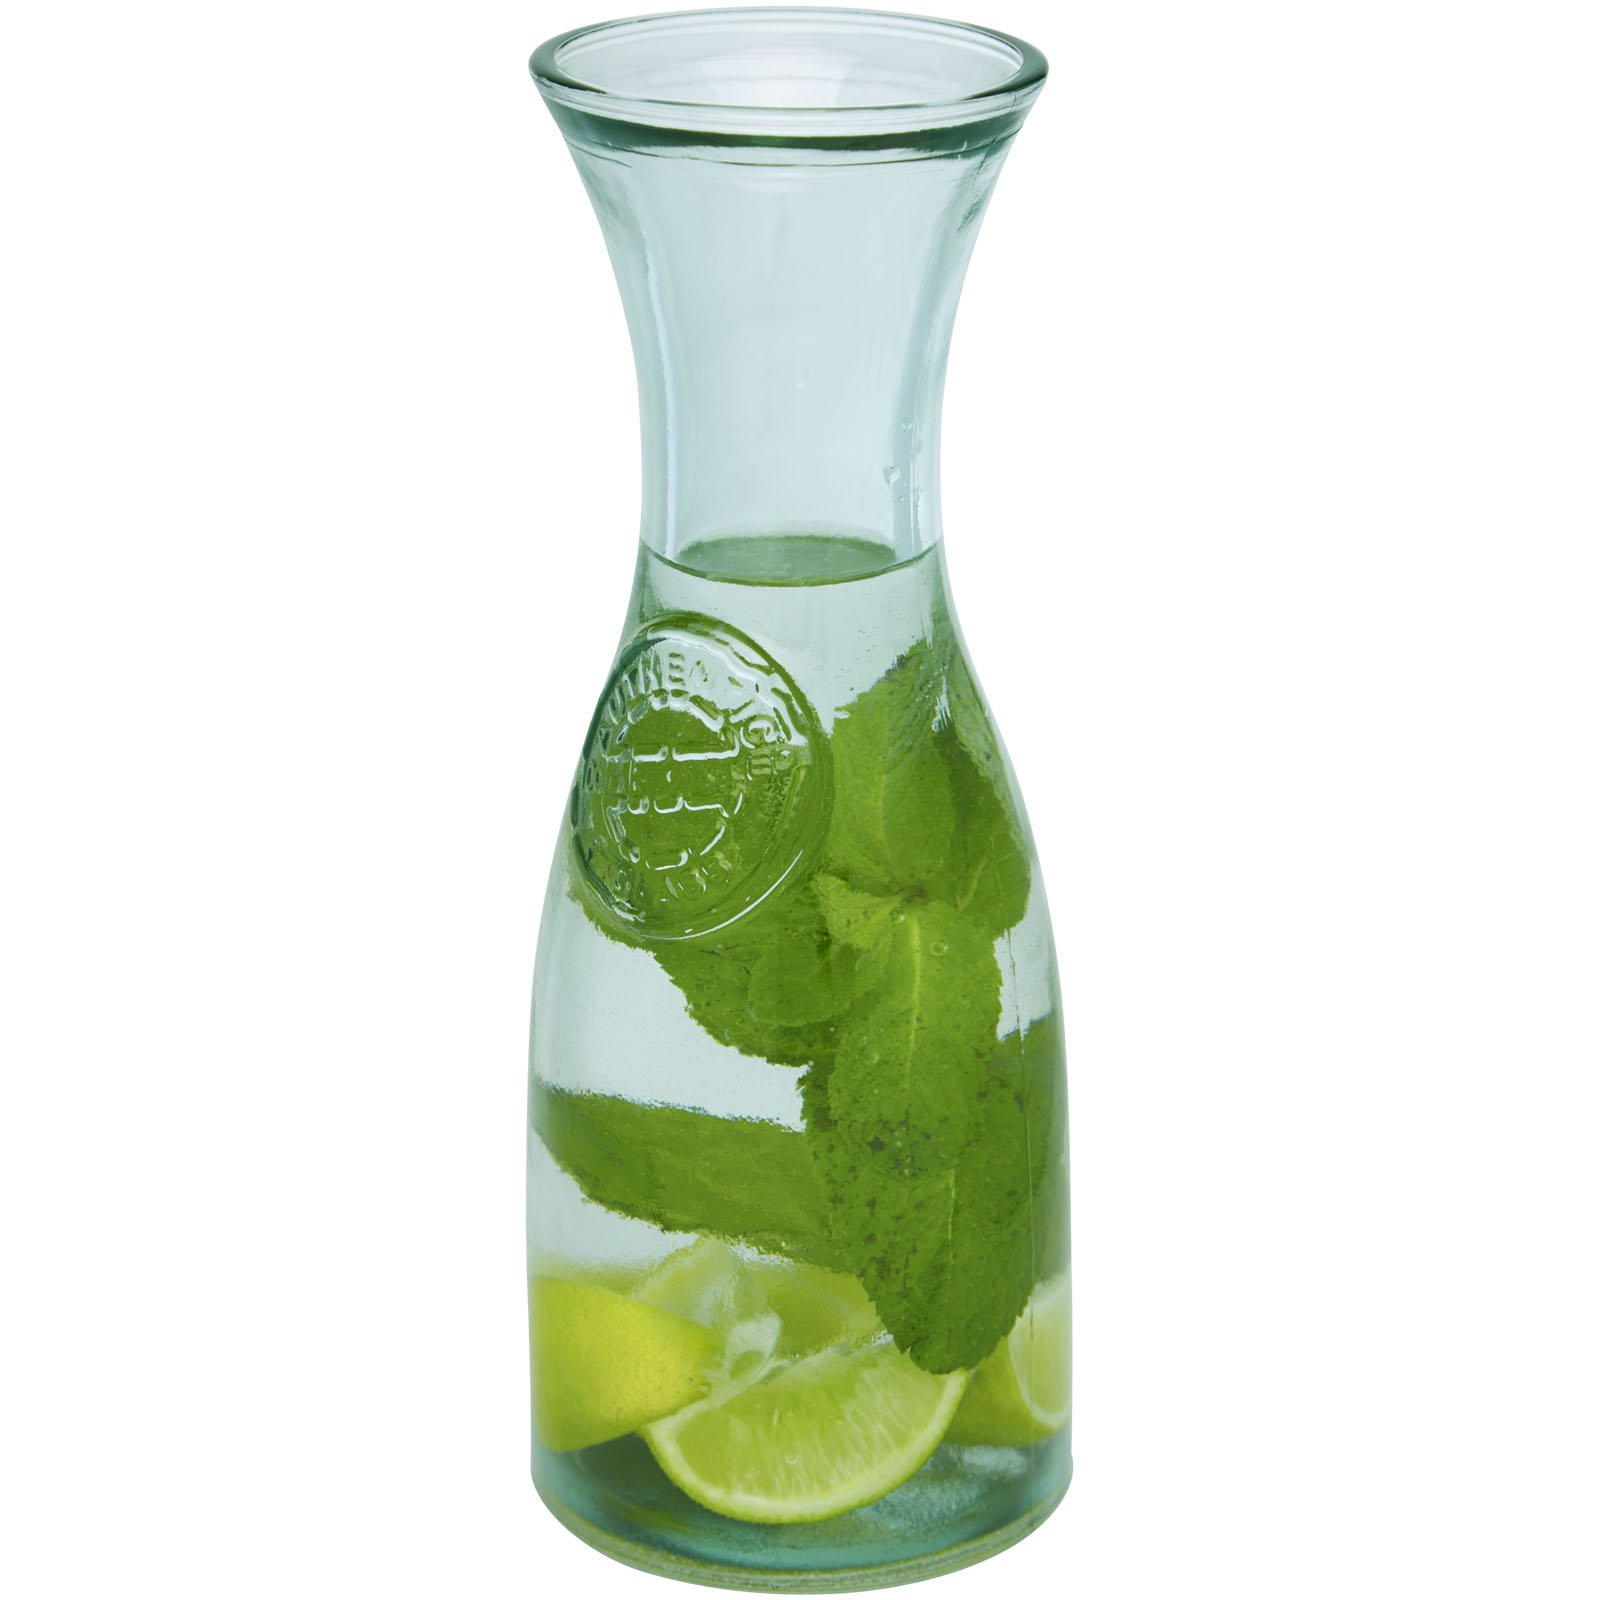 Authentic Fresco recycled glass carafe